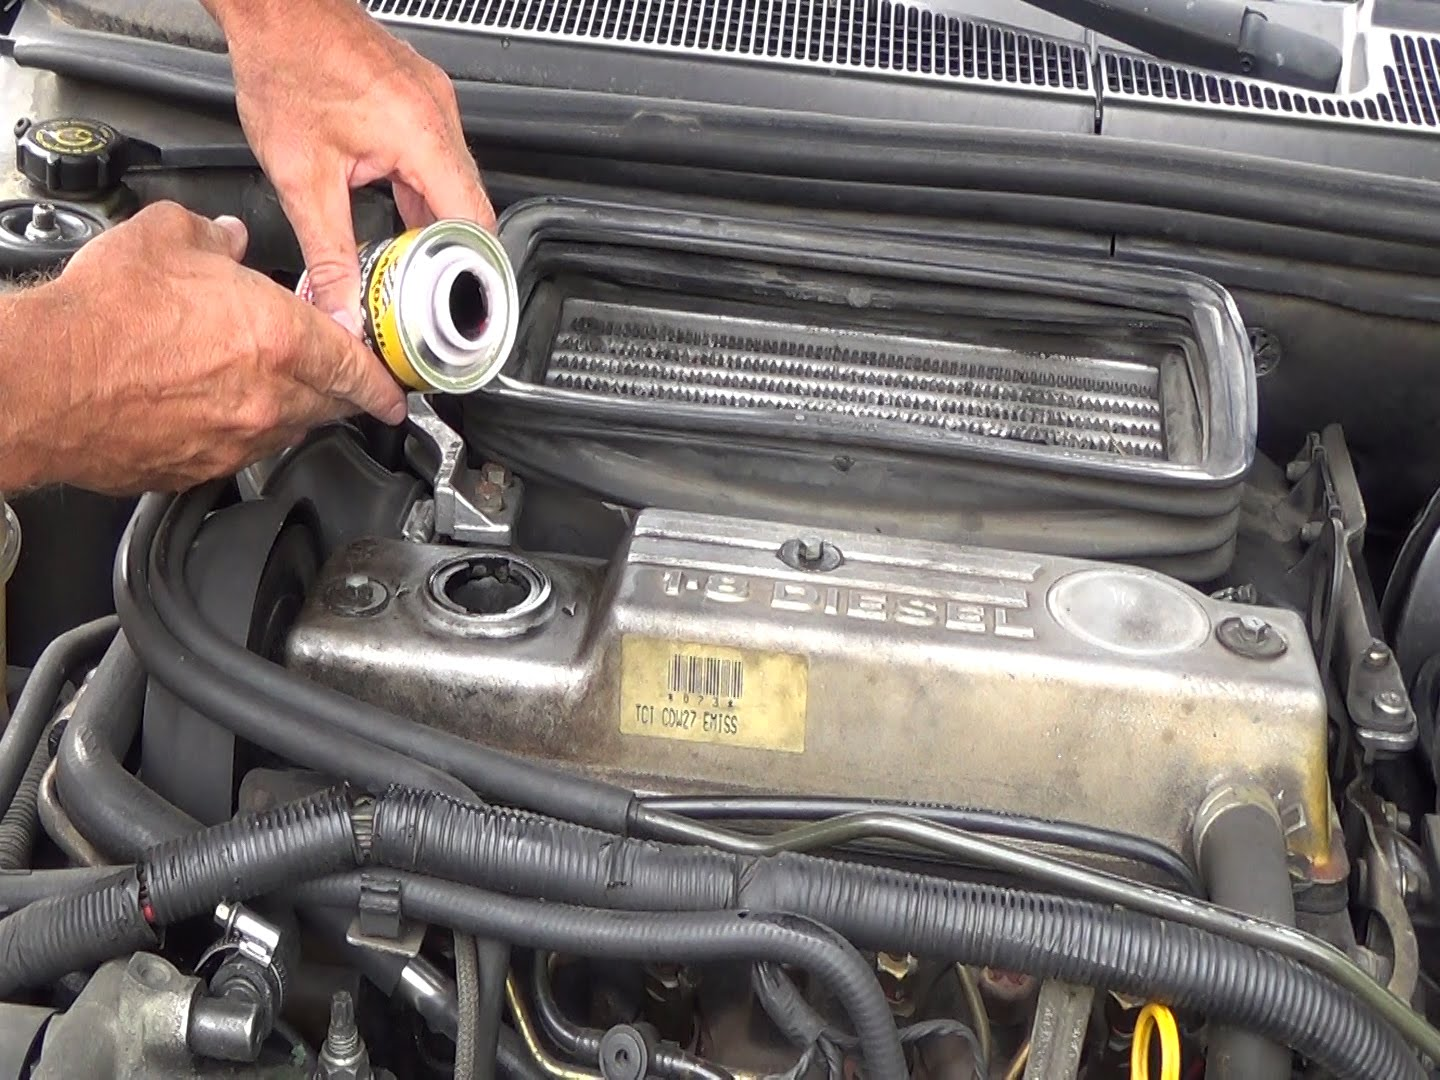 Business Service Provider: Reducing Engine Blow by Using Oil Treatment